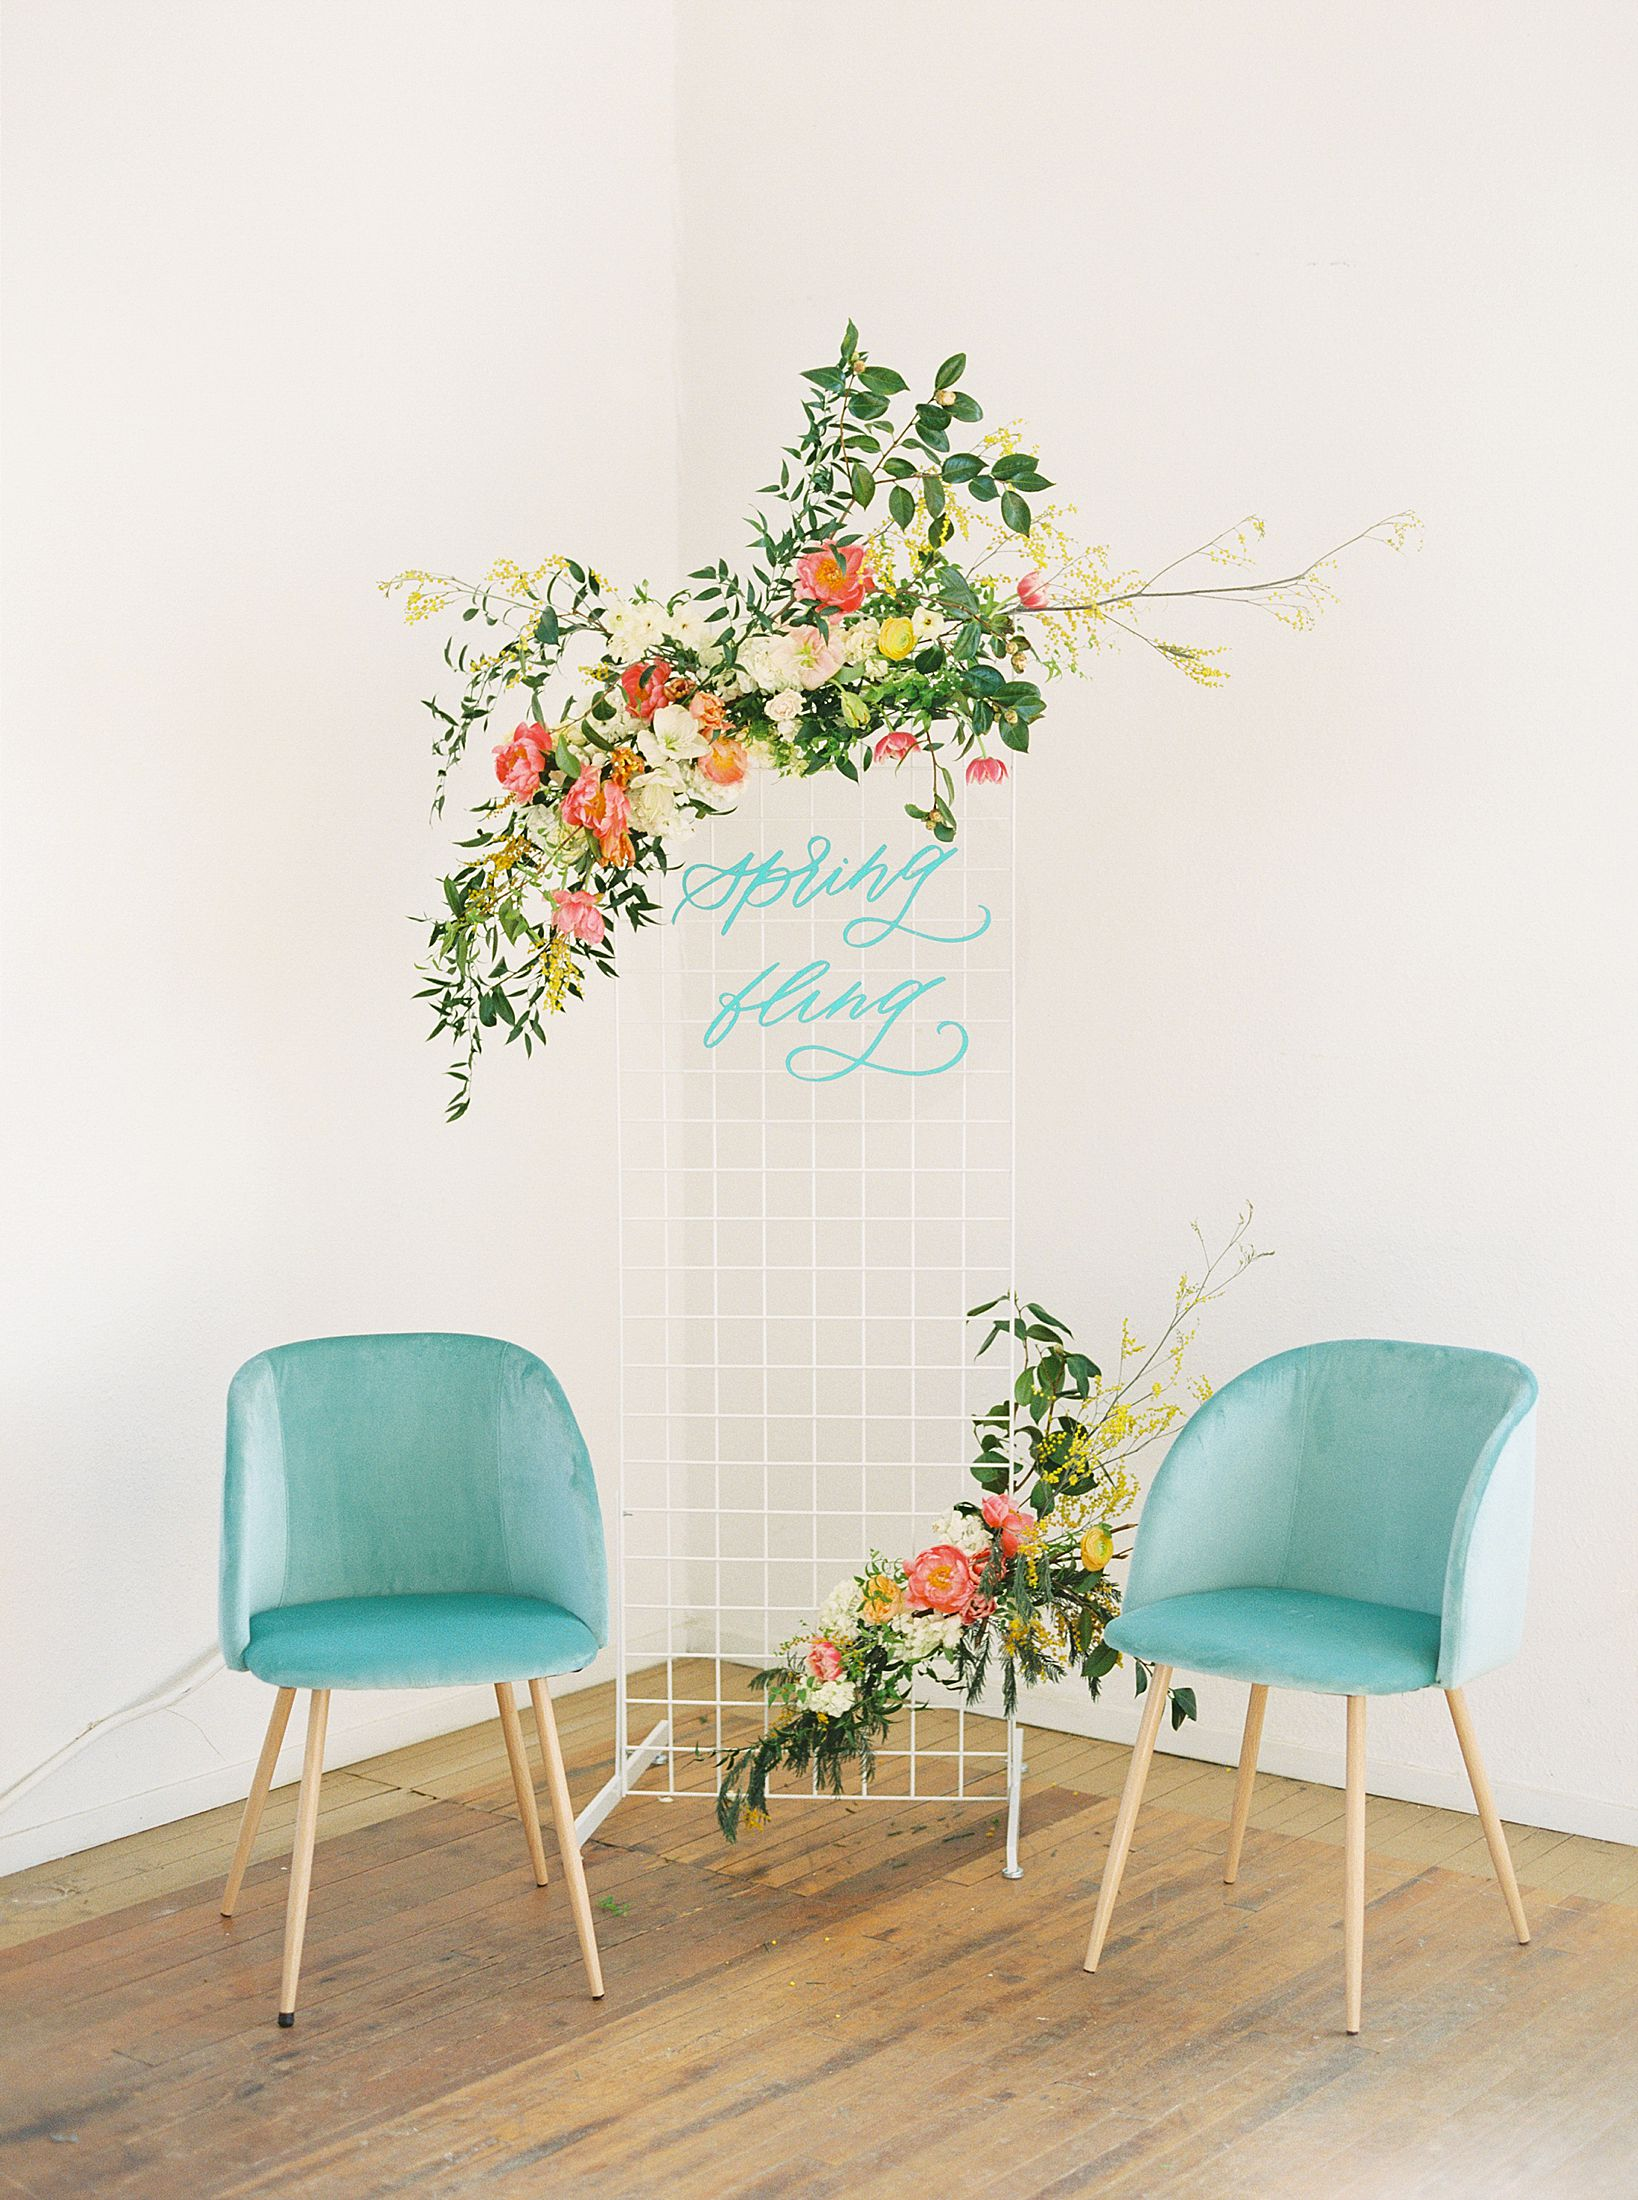 Bay Area Spring Wedding Inspiration - Ashley Baumgartner - Inspired By This - Party Crush Studio and Lens of Lenox Videography - Bay Area Wedding Photography_0001.jpg